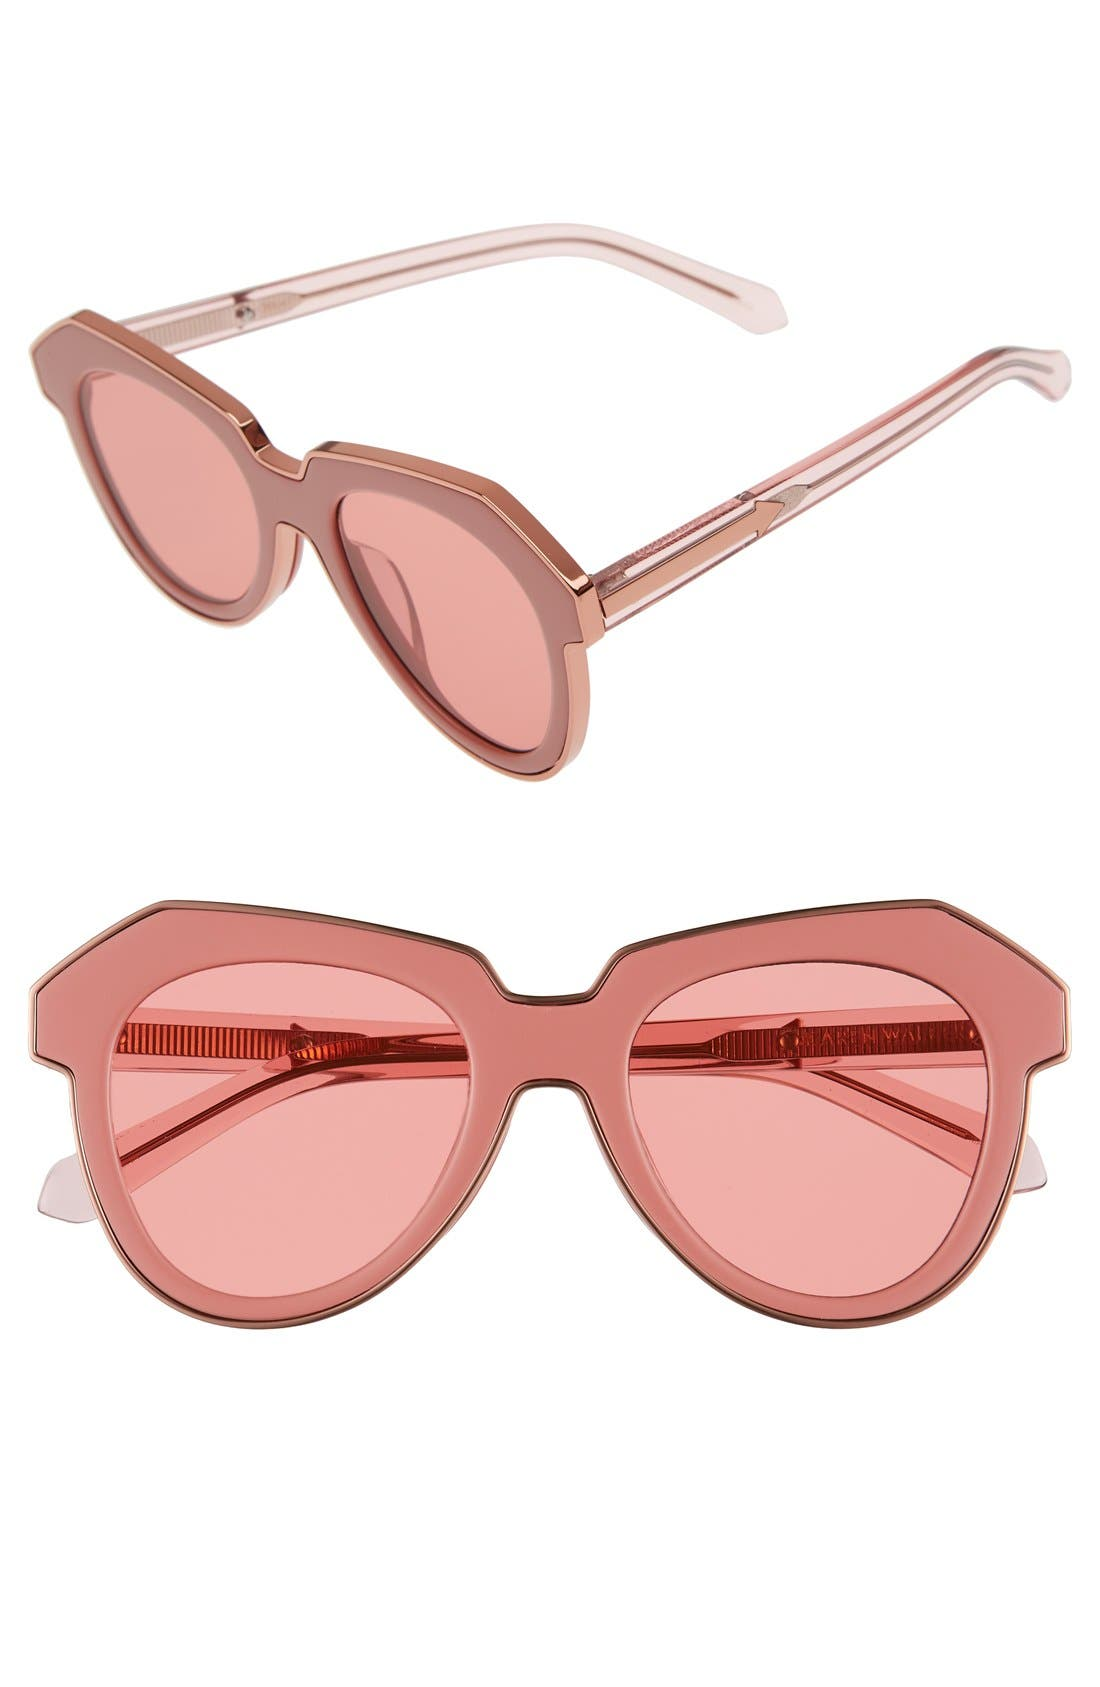 'One Astronaut - Arrowed by Karen' 49mm Sunglasses,                         Main,                         color, Crystal Pink/ Rose Pink